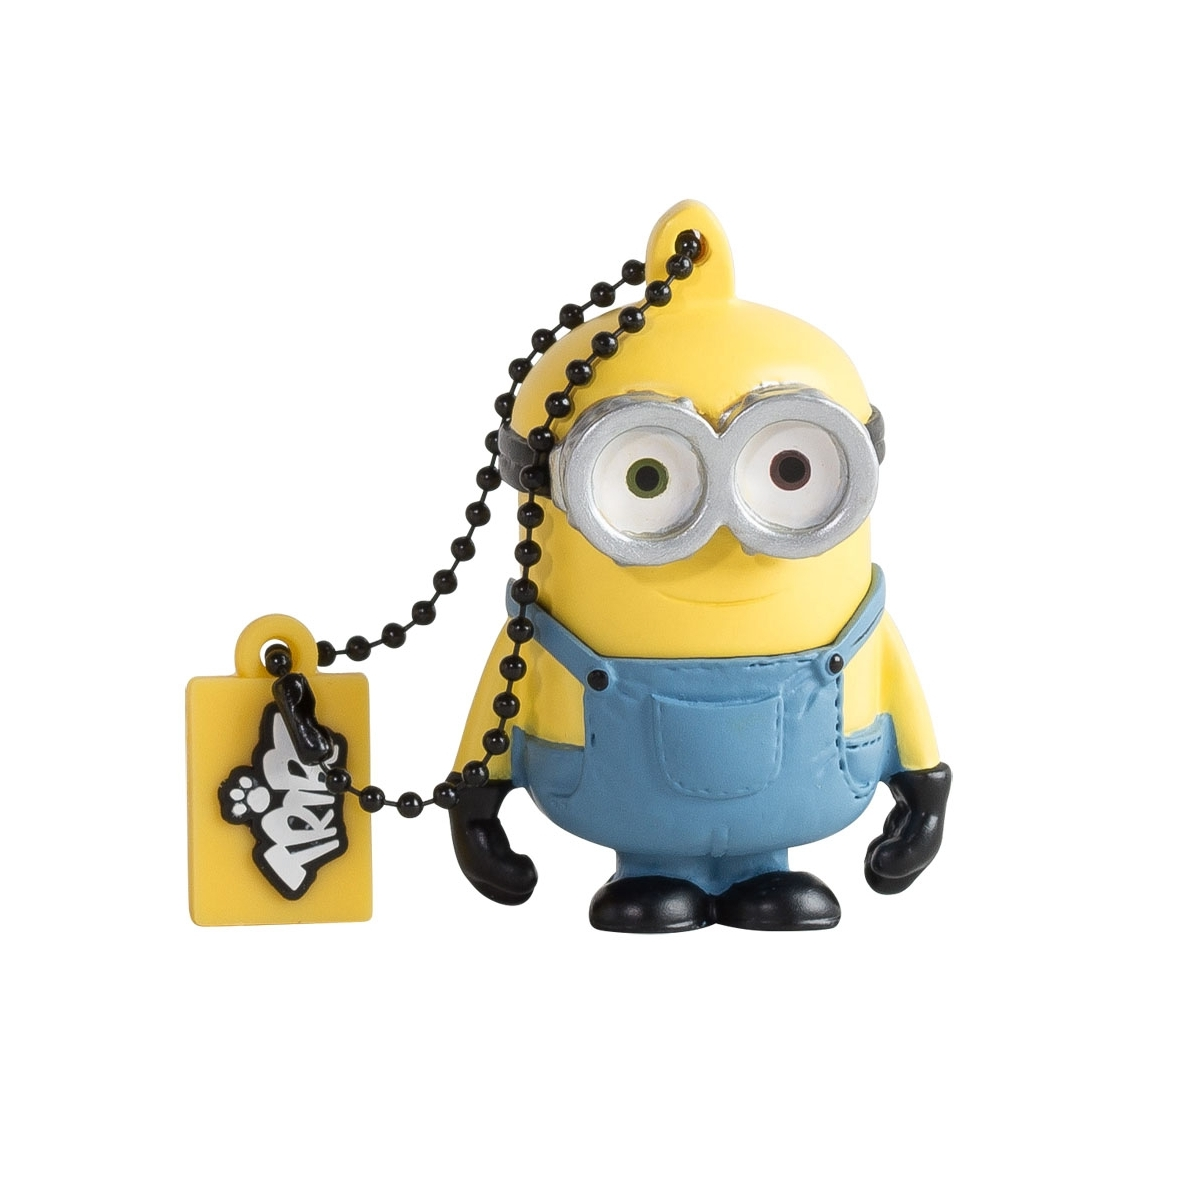 minions cl usb bob 8 gb figurine discount. Black Bedroom Furniture Sets. Home Design Ideas